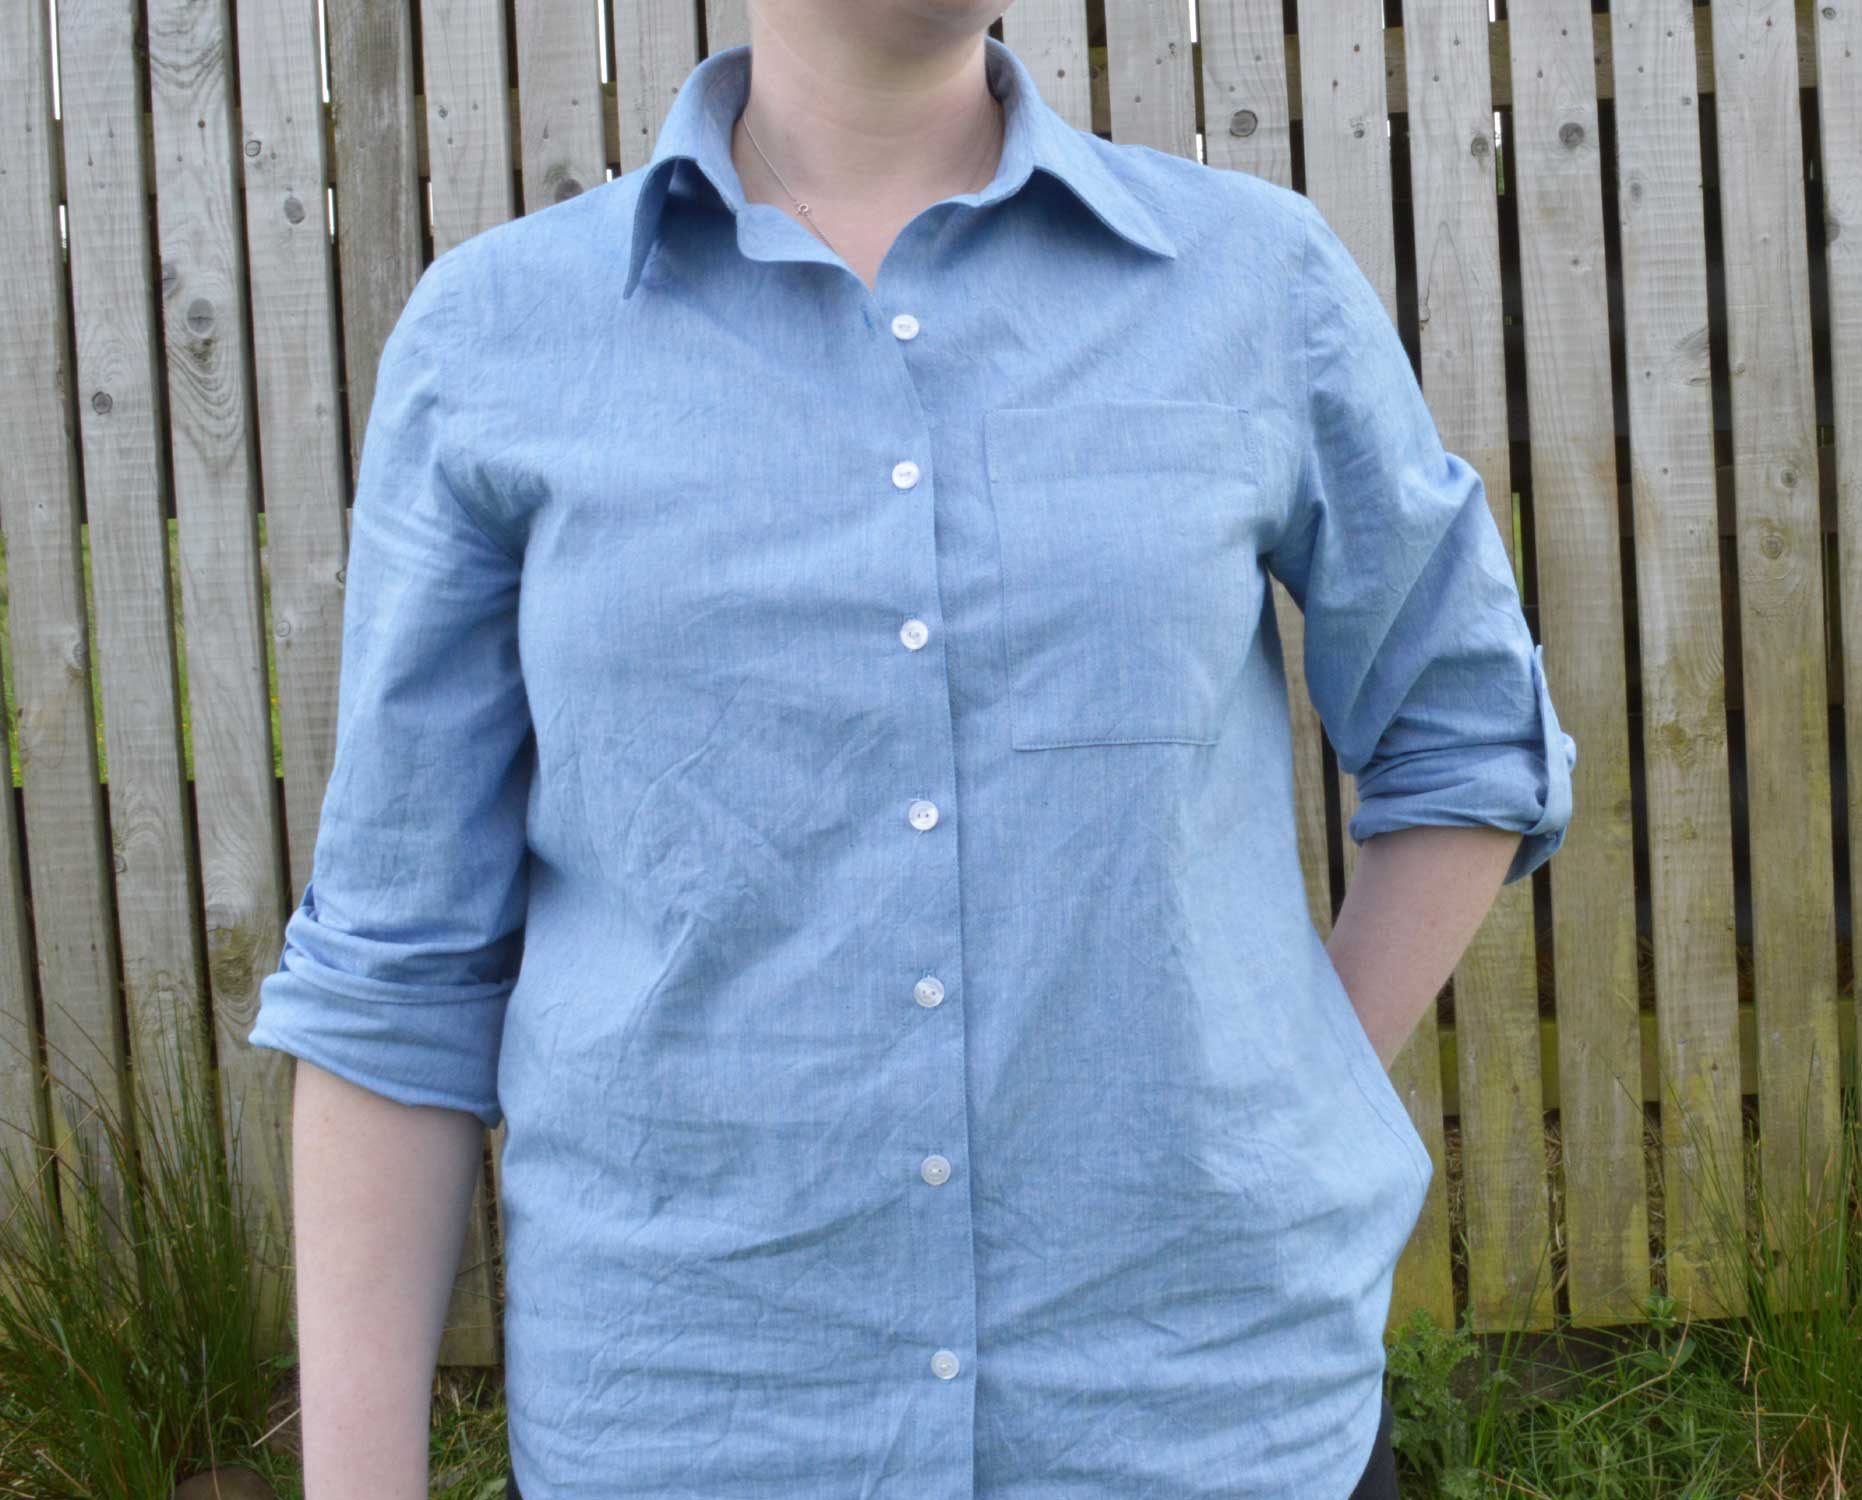 Holm Sown: Butterick B5526 Shirt in yarn dyed cotton chambray // front view with patch pocket